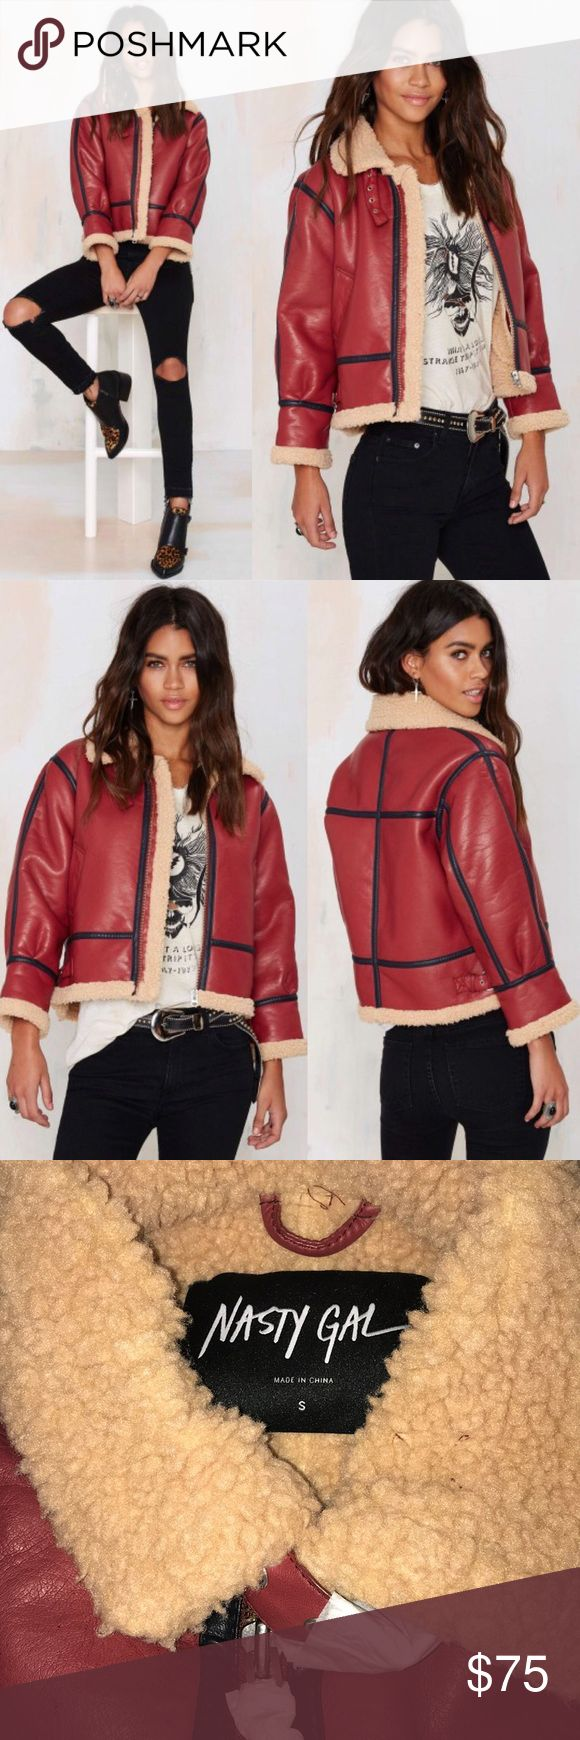 Nasty Gal Shear Force Vegan Leather Jacket Force to be reckoned with? Hell yeah. The Shear Force Jacket is made in a burgundy vegan leather and features shearling lining, black trim, welt pockets, and adjustable buckle closures at neck and sides. Front zip closure. Team it up with kicking ass and looking good doin' it. By Nasty Gal. Sold out at Nasty Gal. Brand new boutique item   *Polyester  *Runs true to size  *Model is wearing size small  *Dry clean only  *Imported Nasty Gal Jackets…